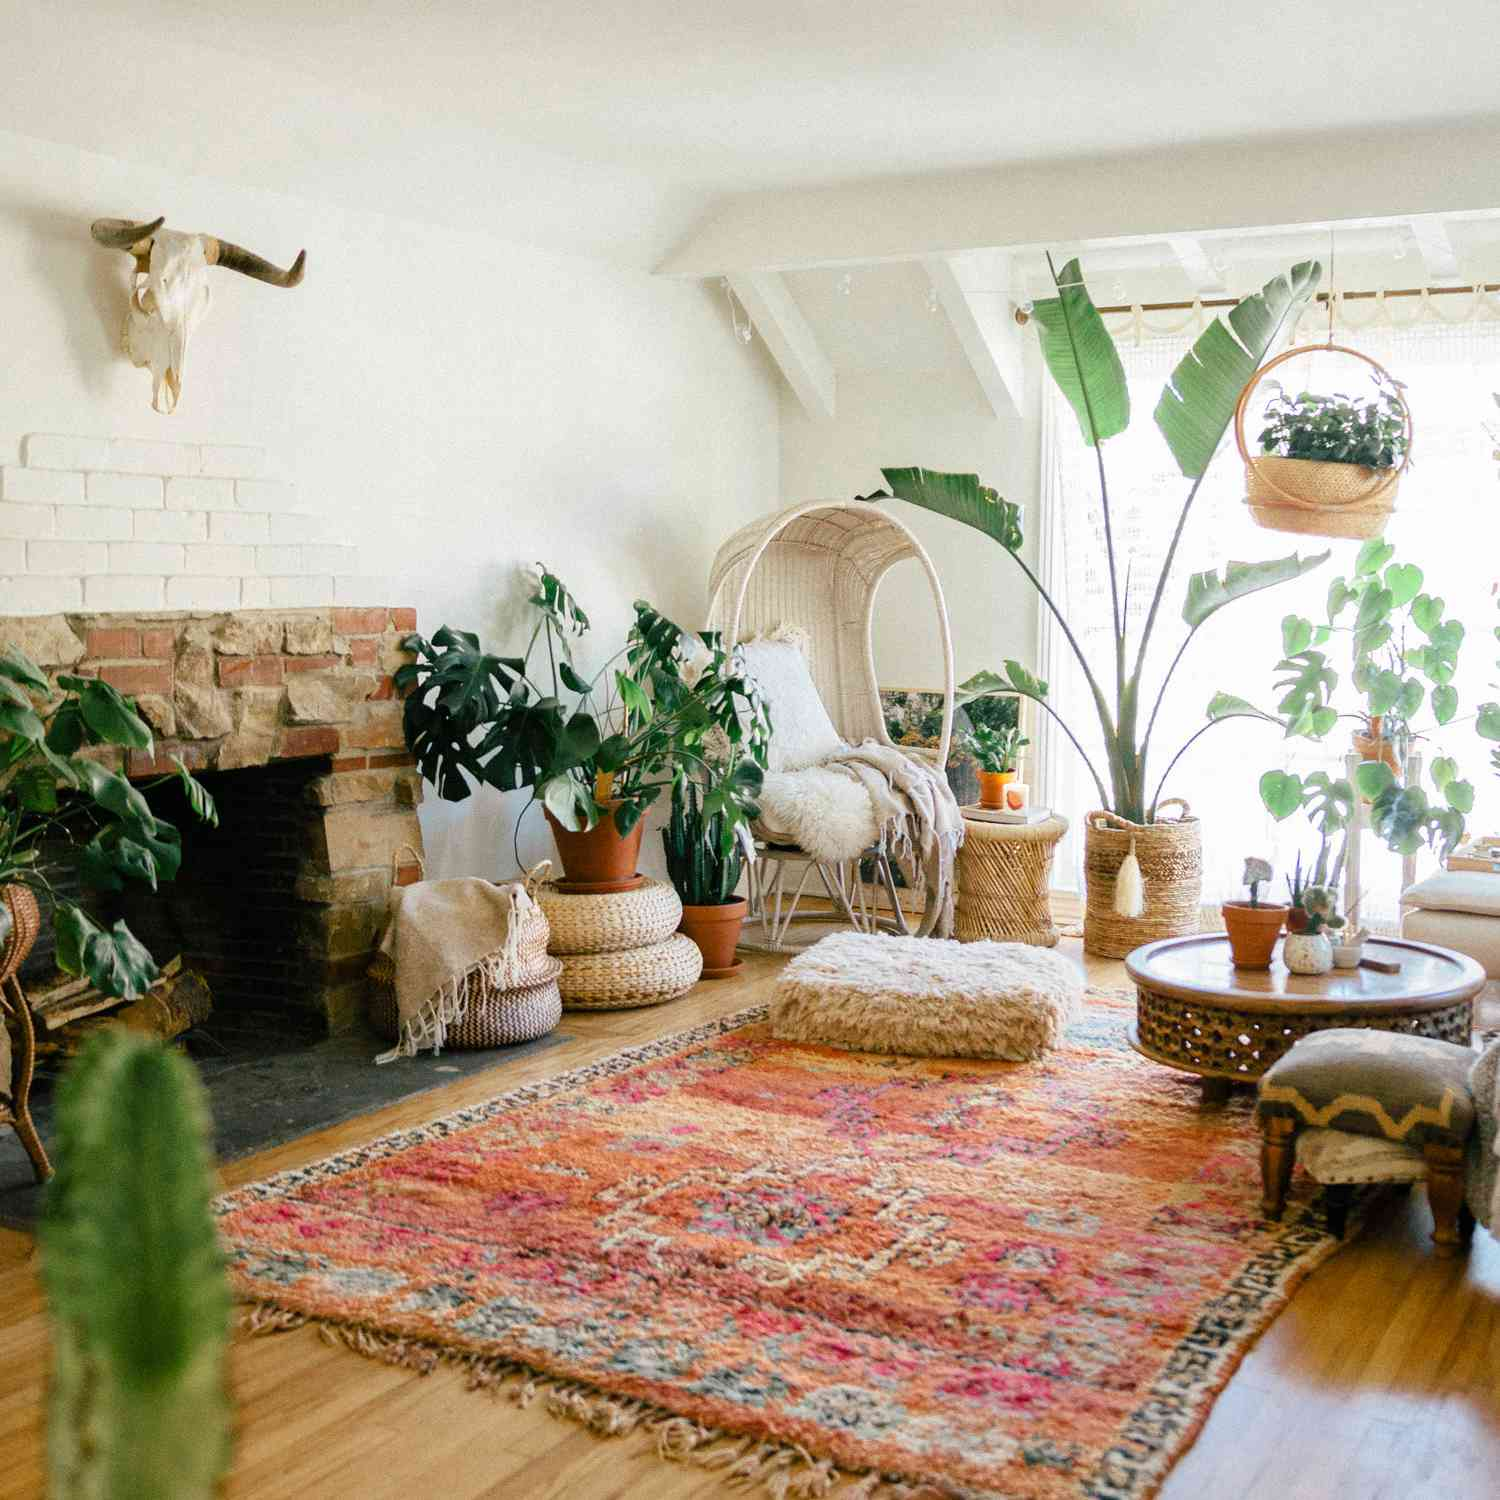 Boho chic living room overflowing with plants and cozy layers